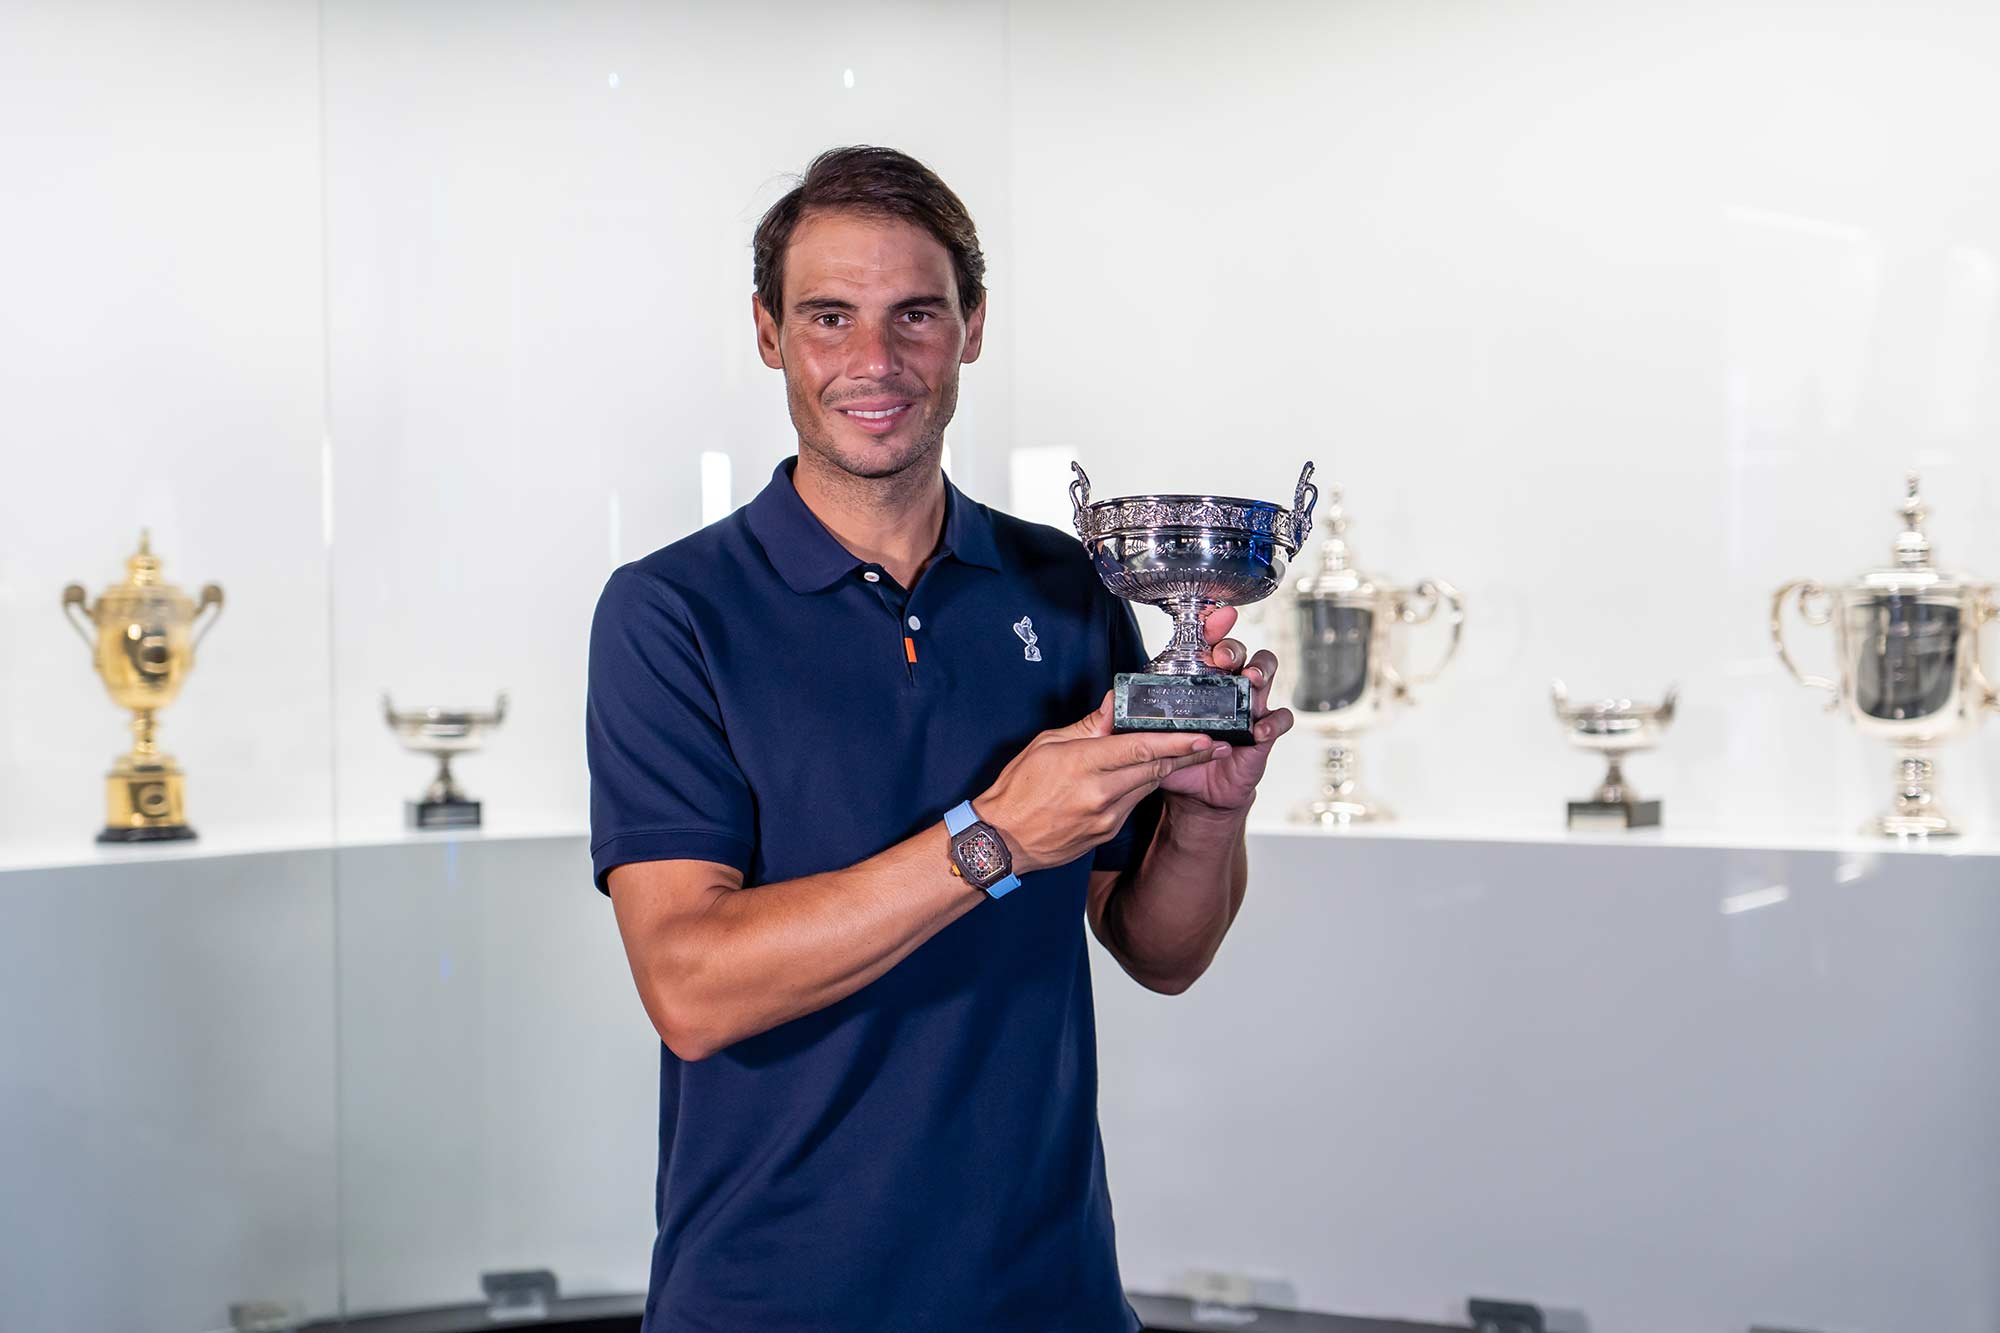 Rafa Nadal places his 20th Grand Slam trophy in the Rafa Nadal Museum